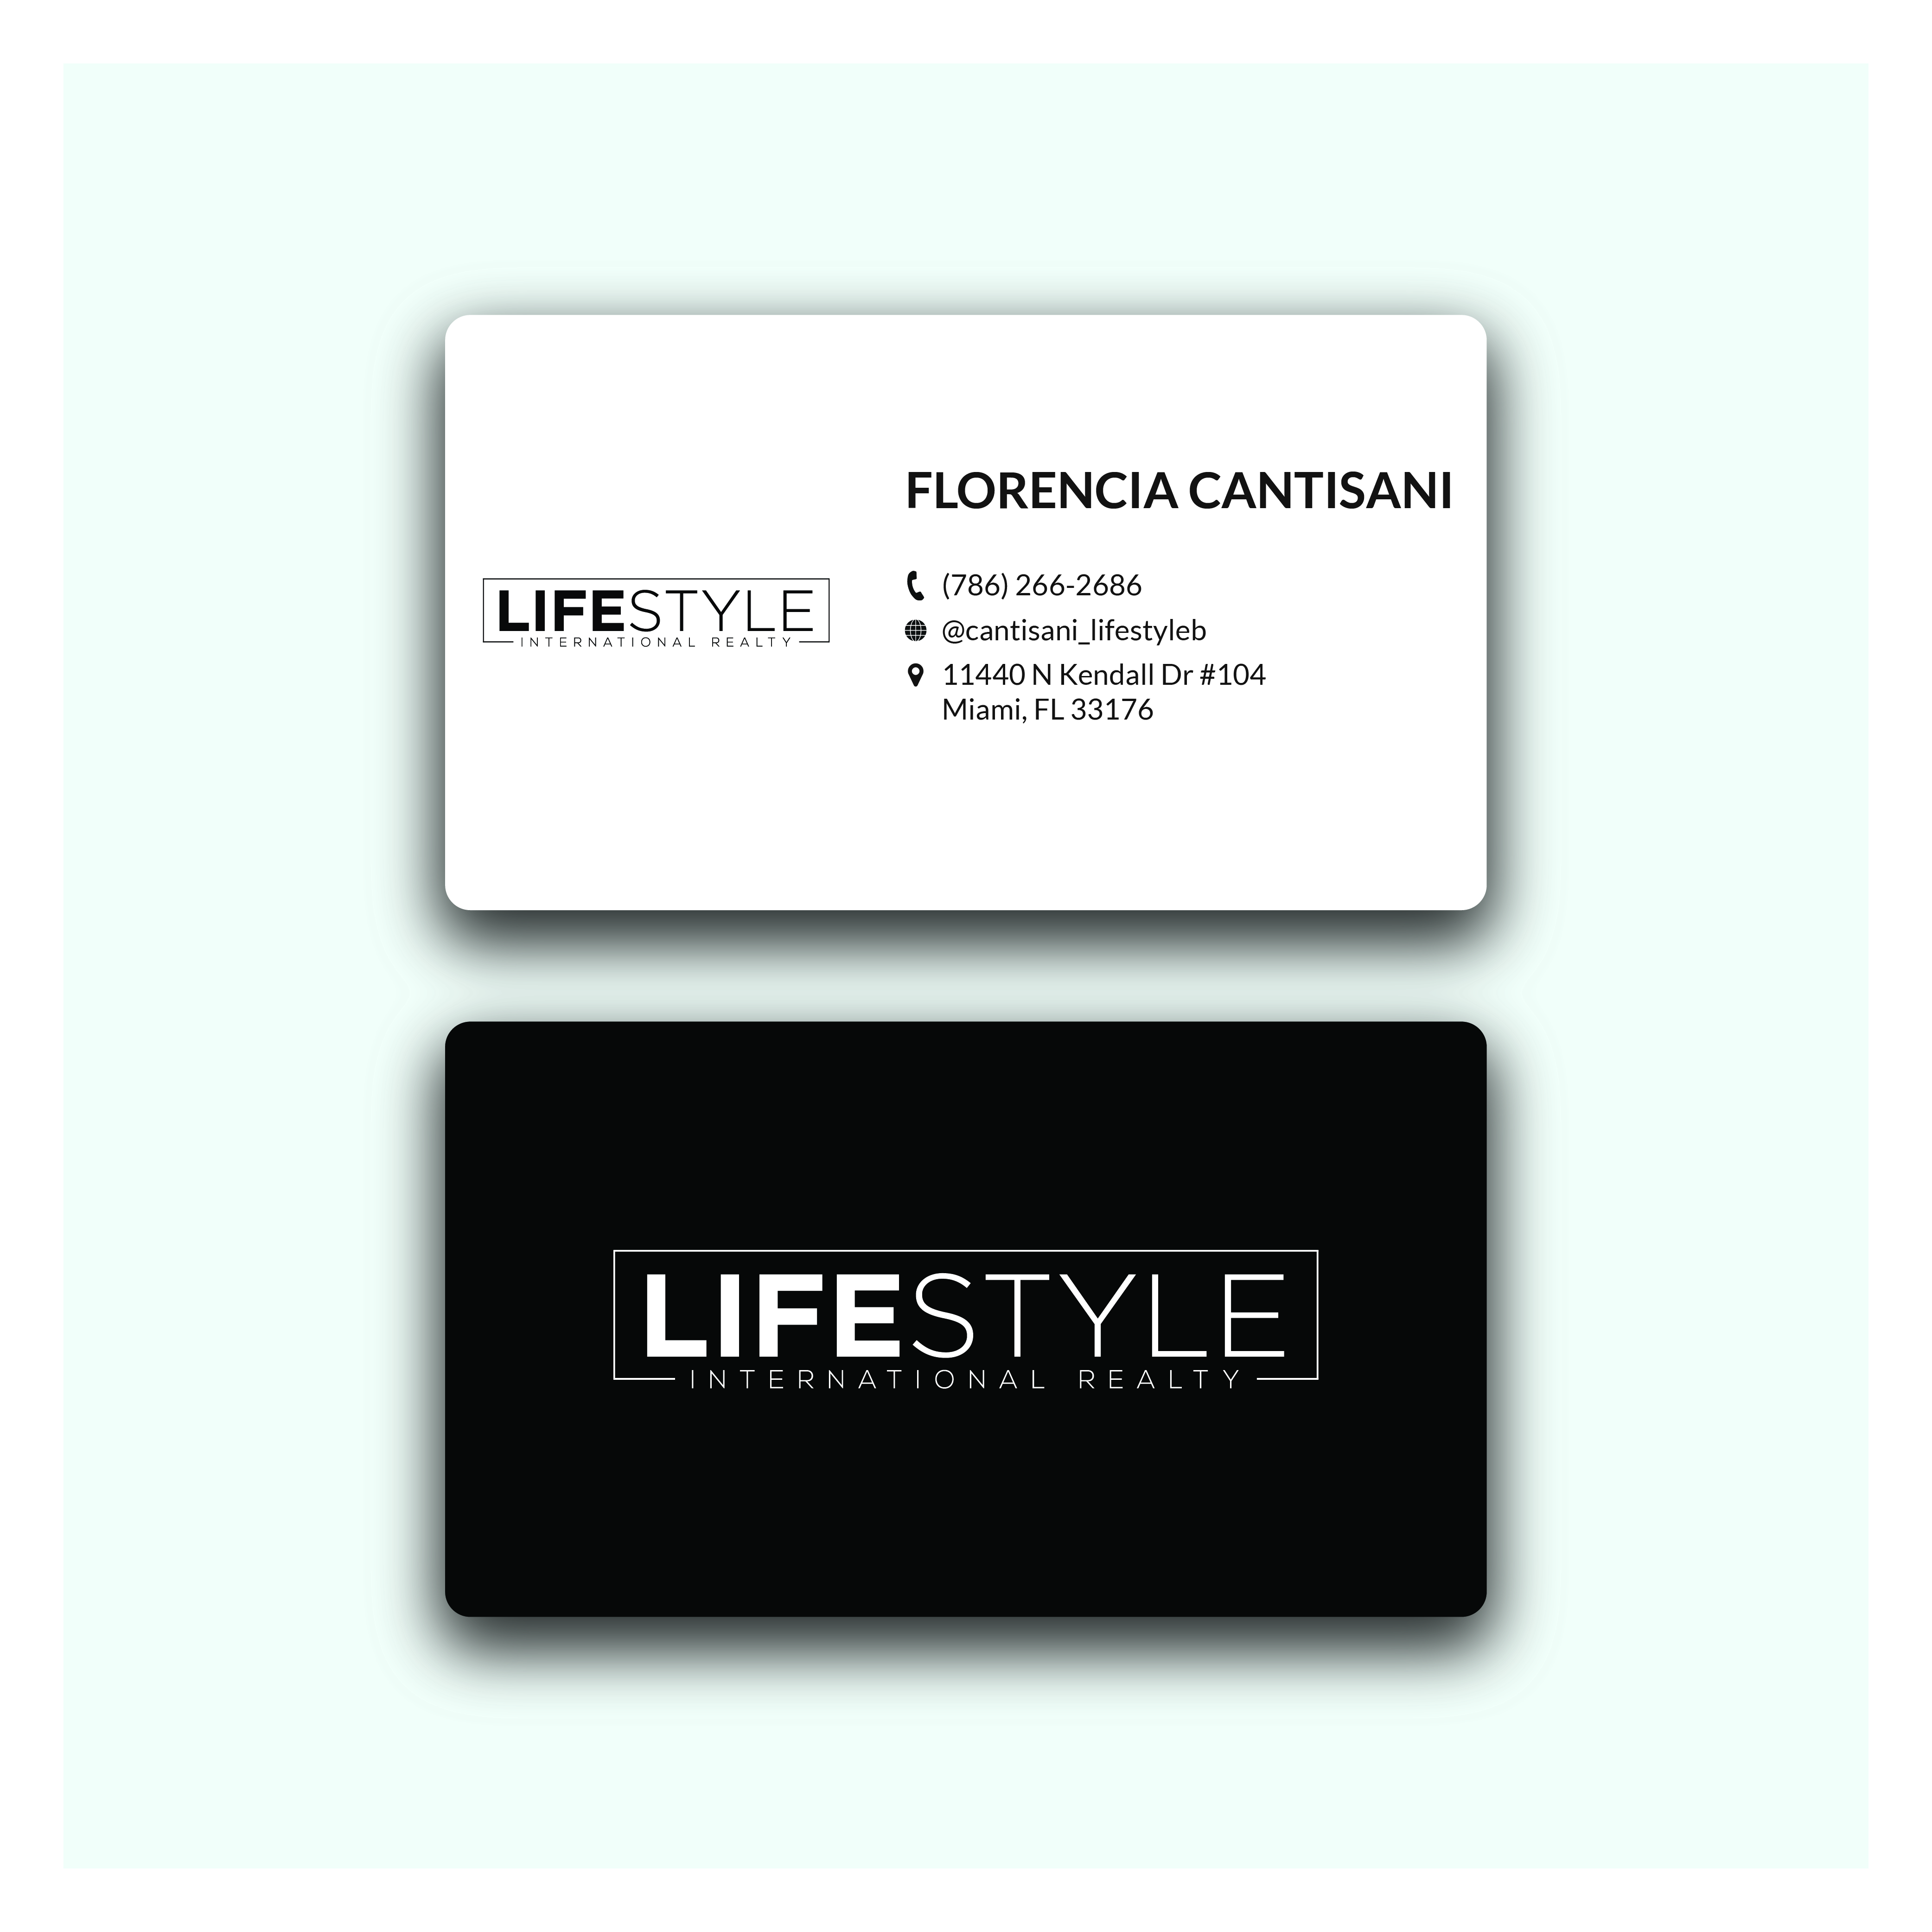 I will provide any type of business card services.